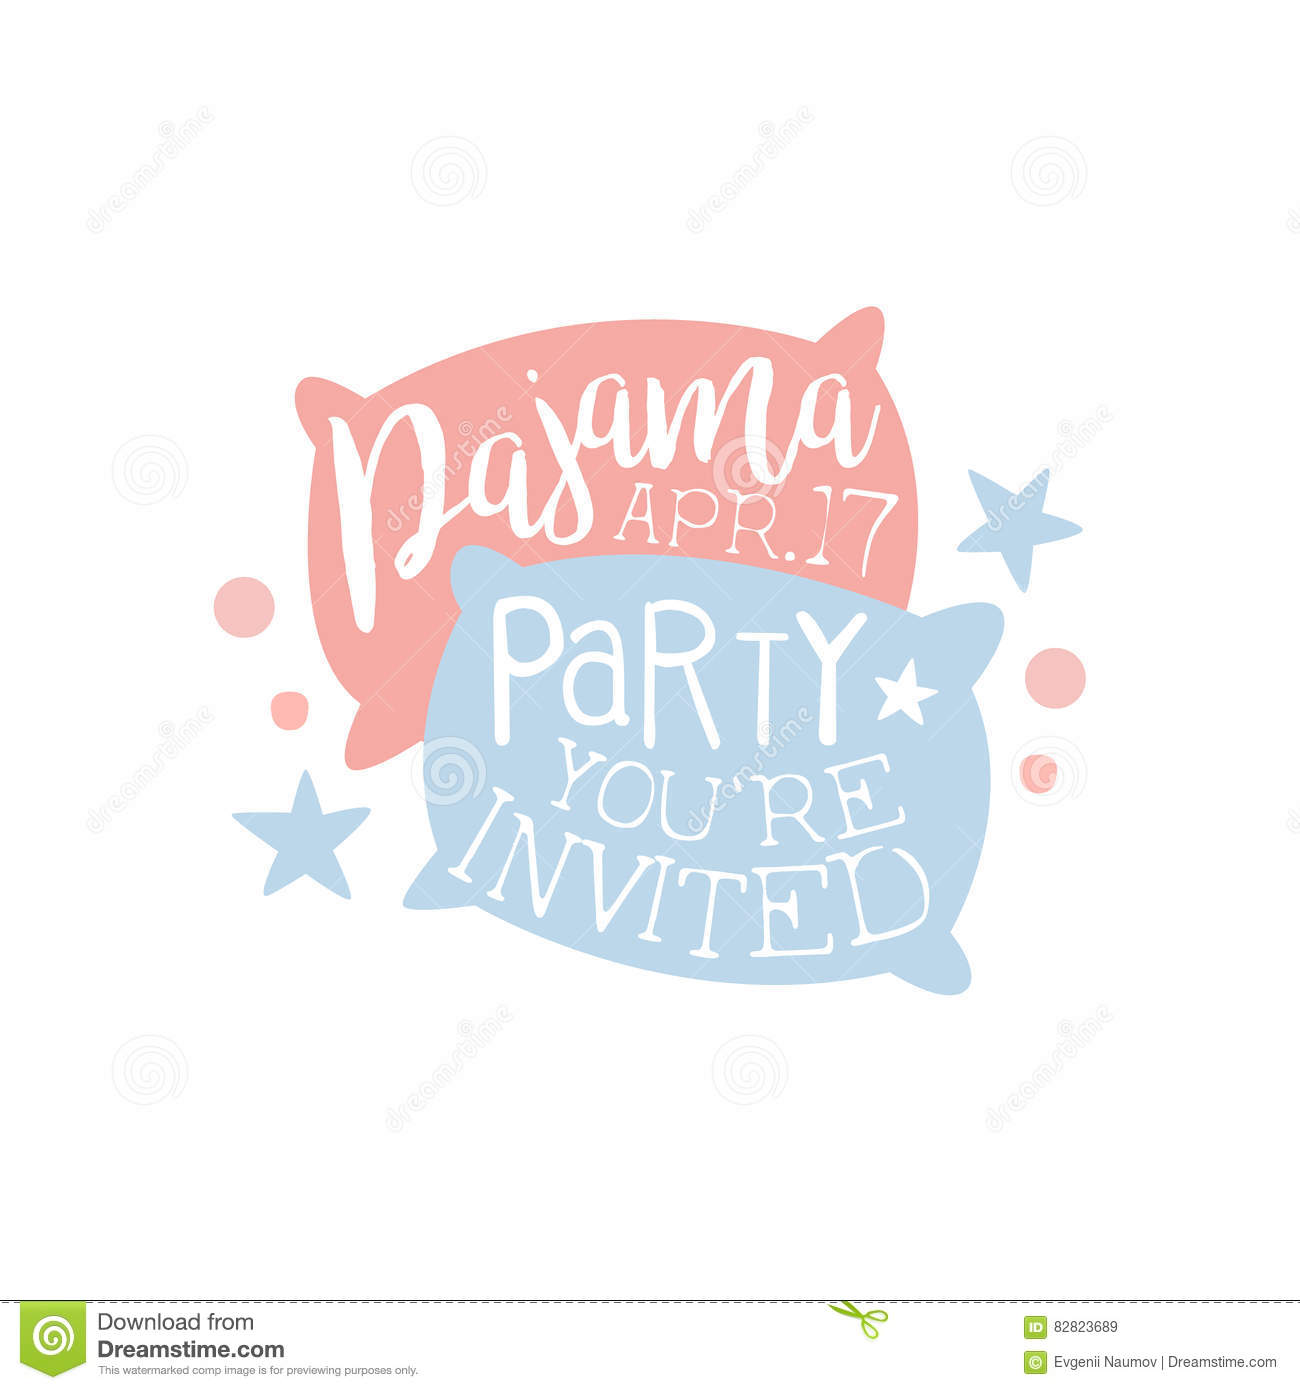 Girly Pajama Party Invitation Card Template With Two ...